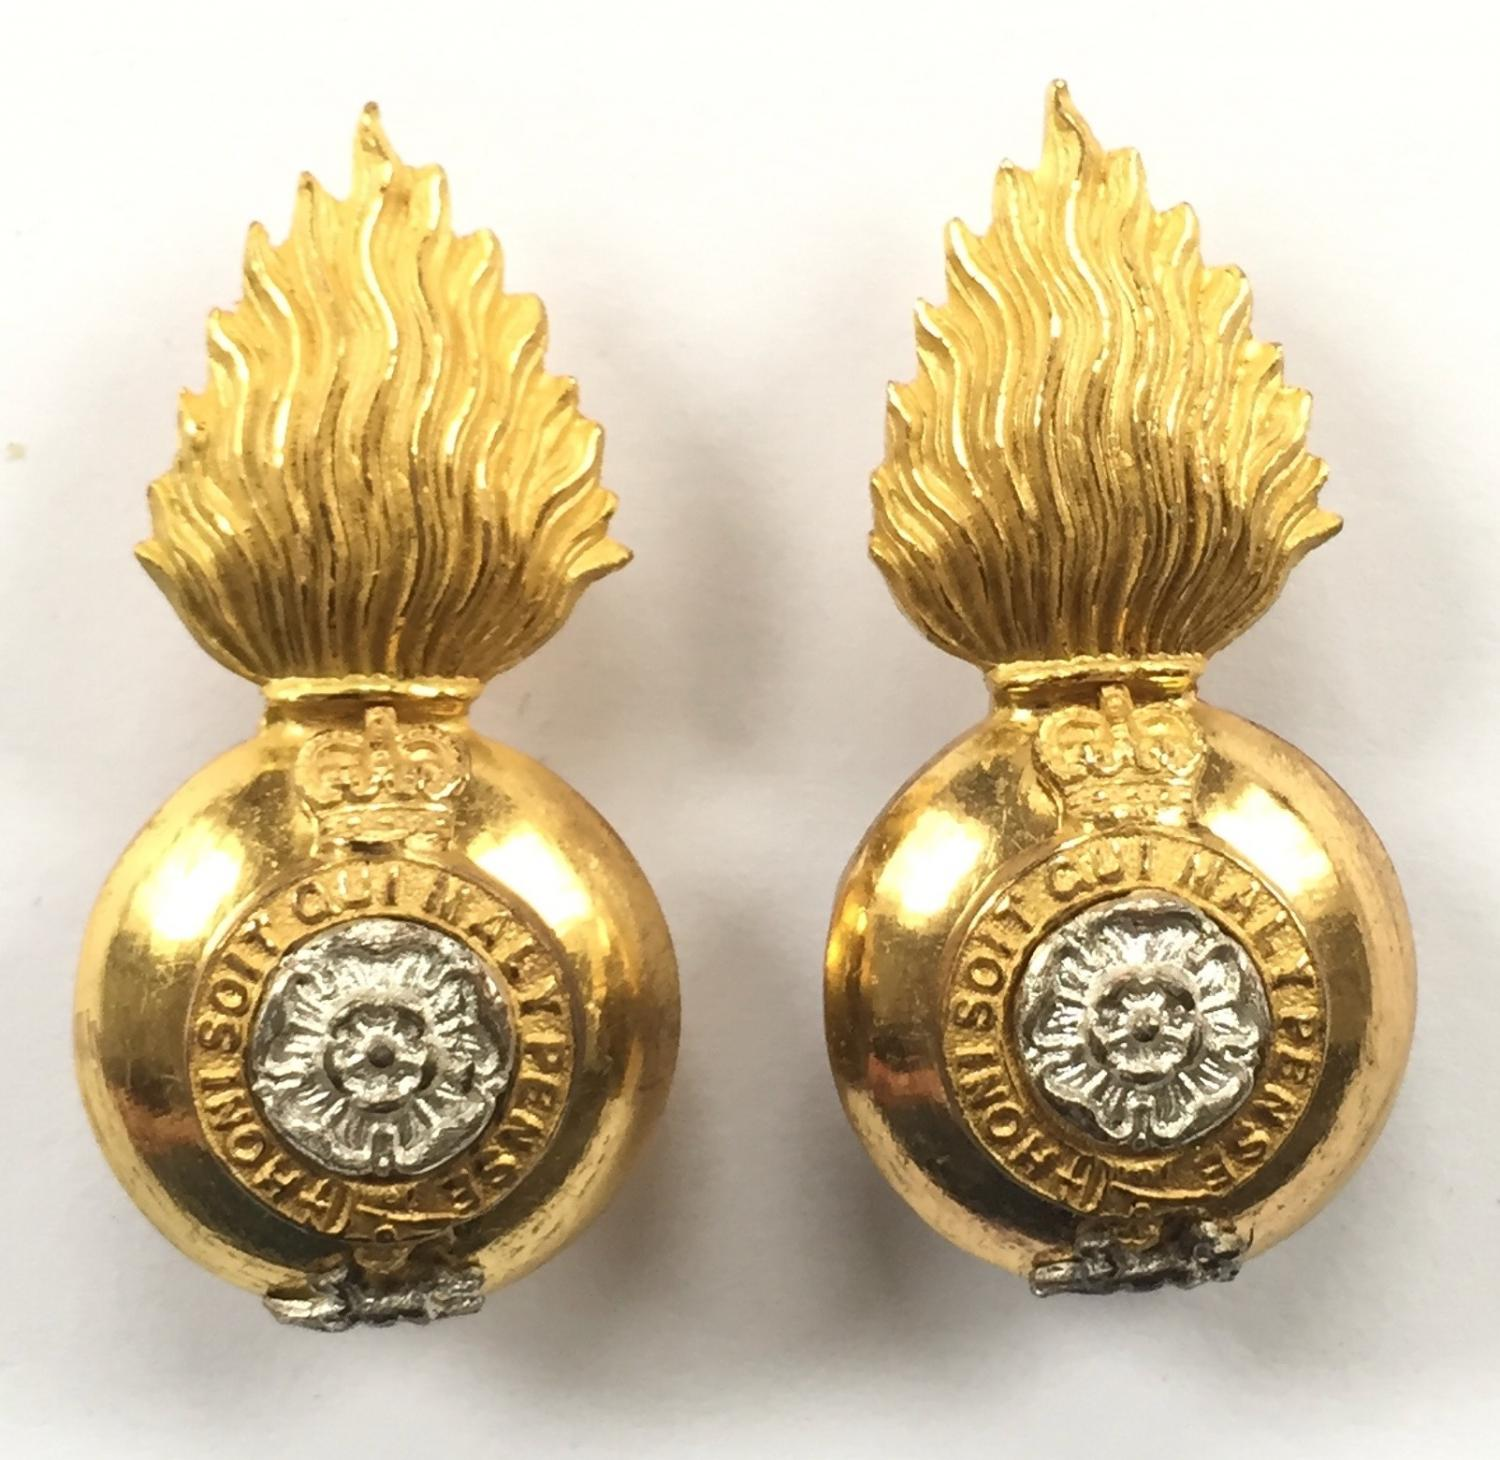 Royal Fusiliers pair of post 1953 Officer's collar badges